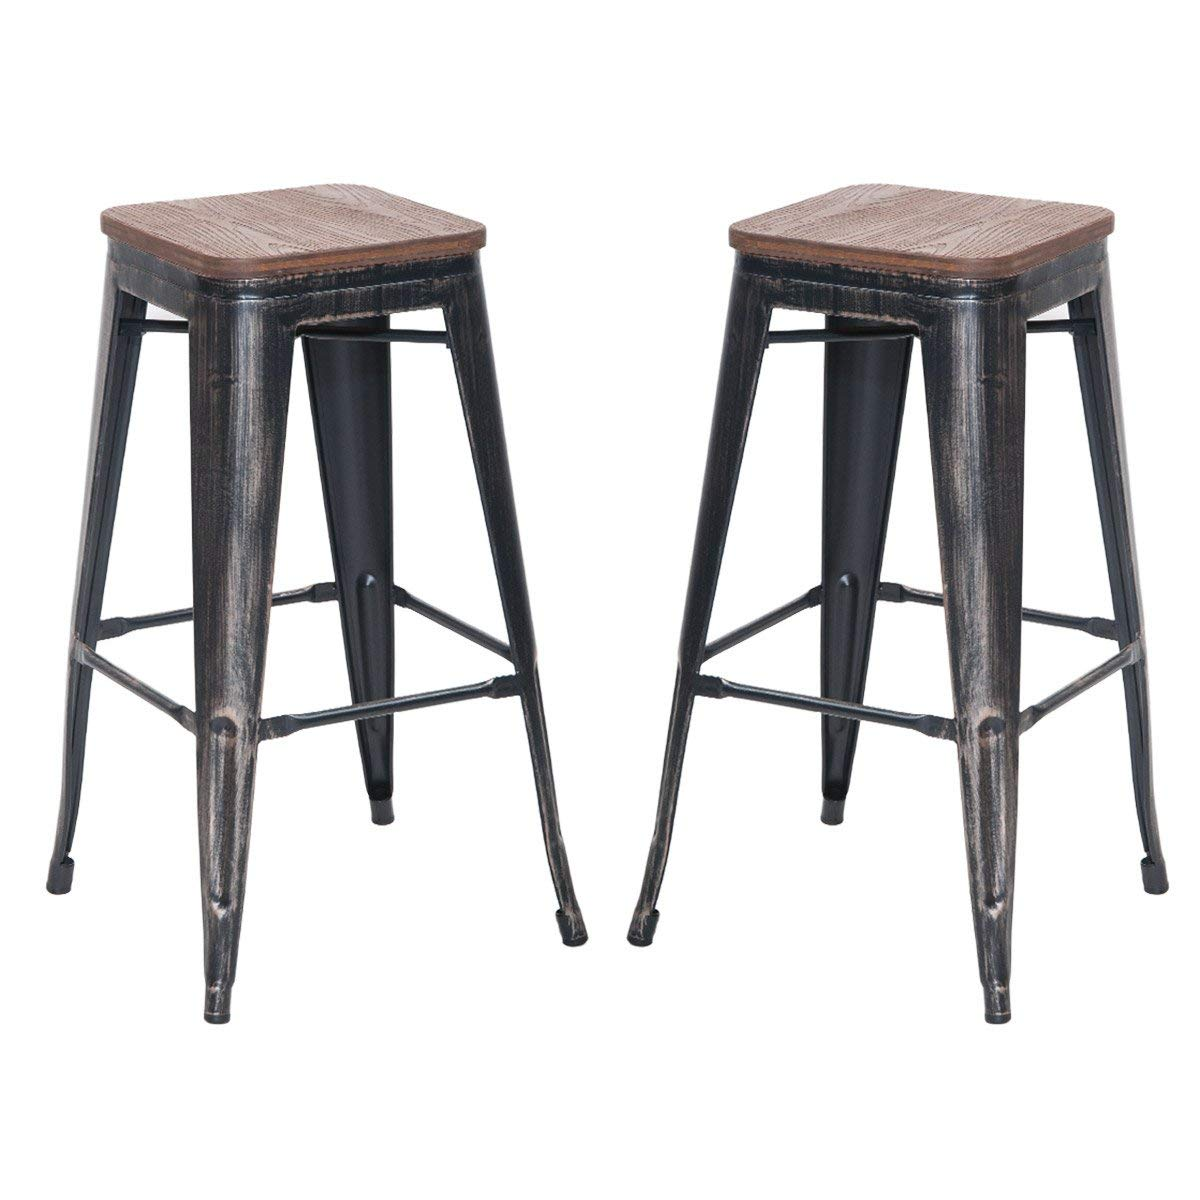 CAMANDE 30'' High Backless Metal Indoor-Outdoor Bar Stool Set of 2 (Distressed Black)